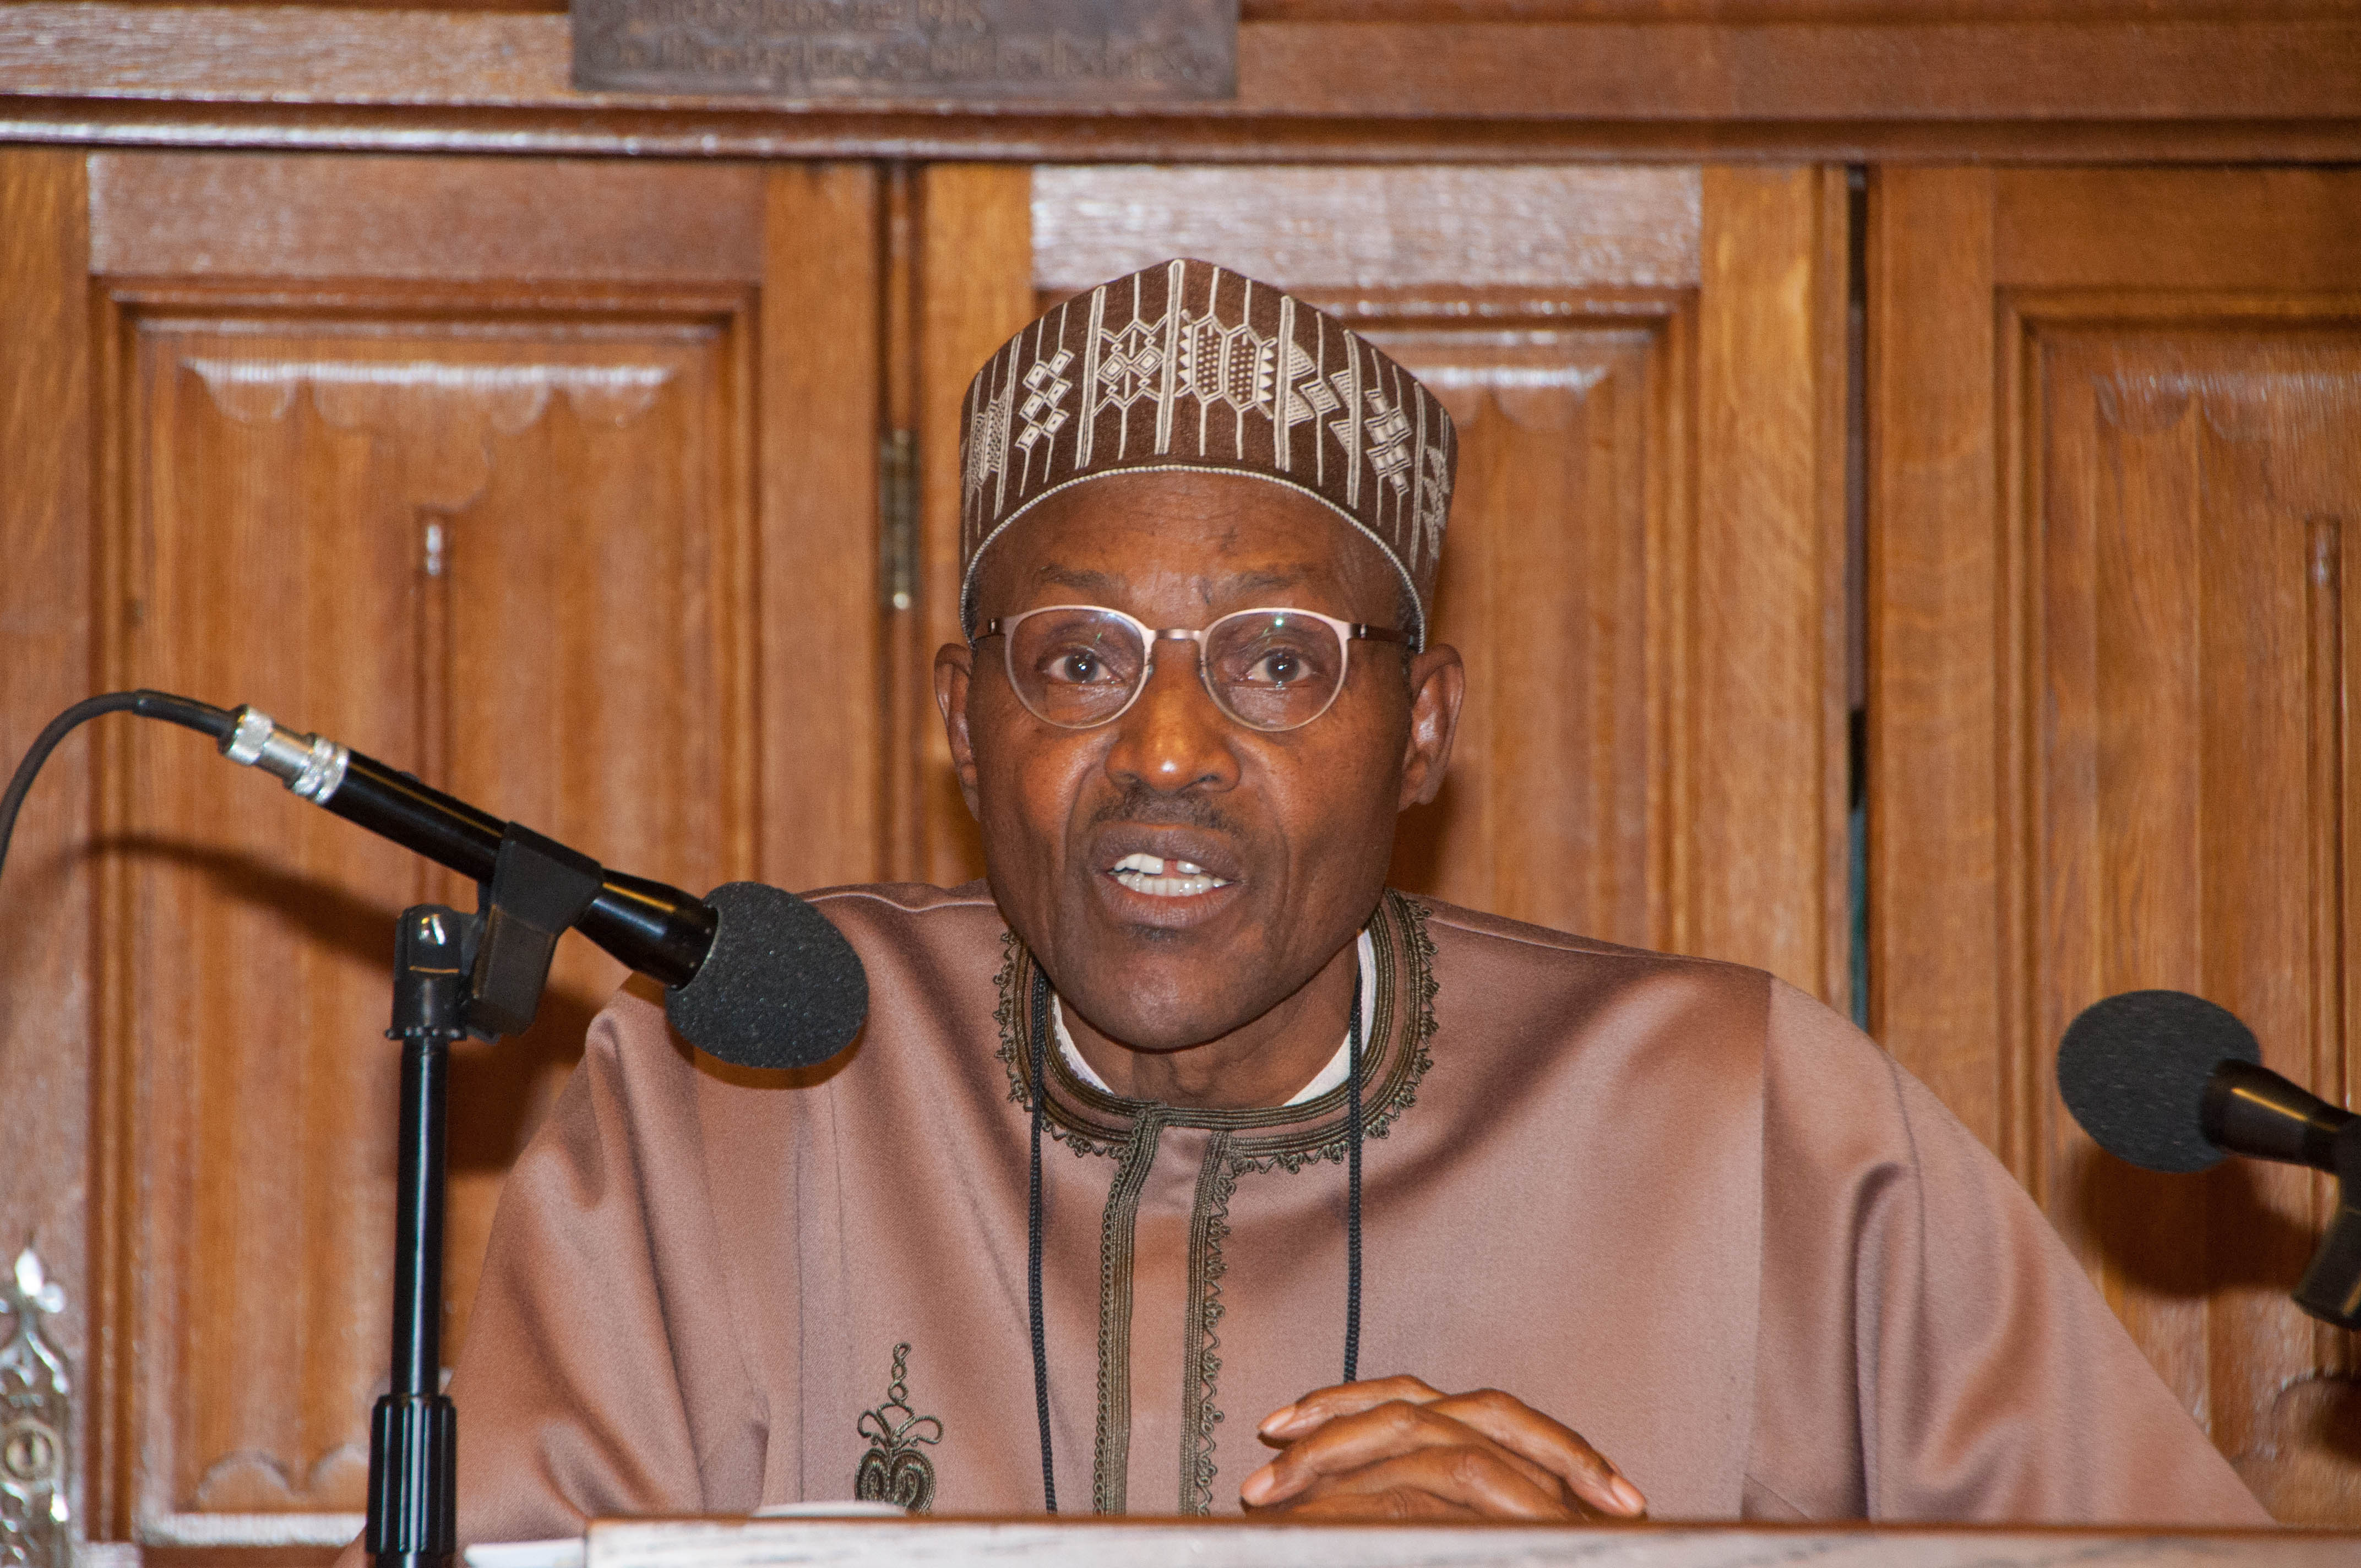 Leave Nigeria if you have another country, says Buhari